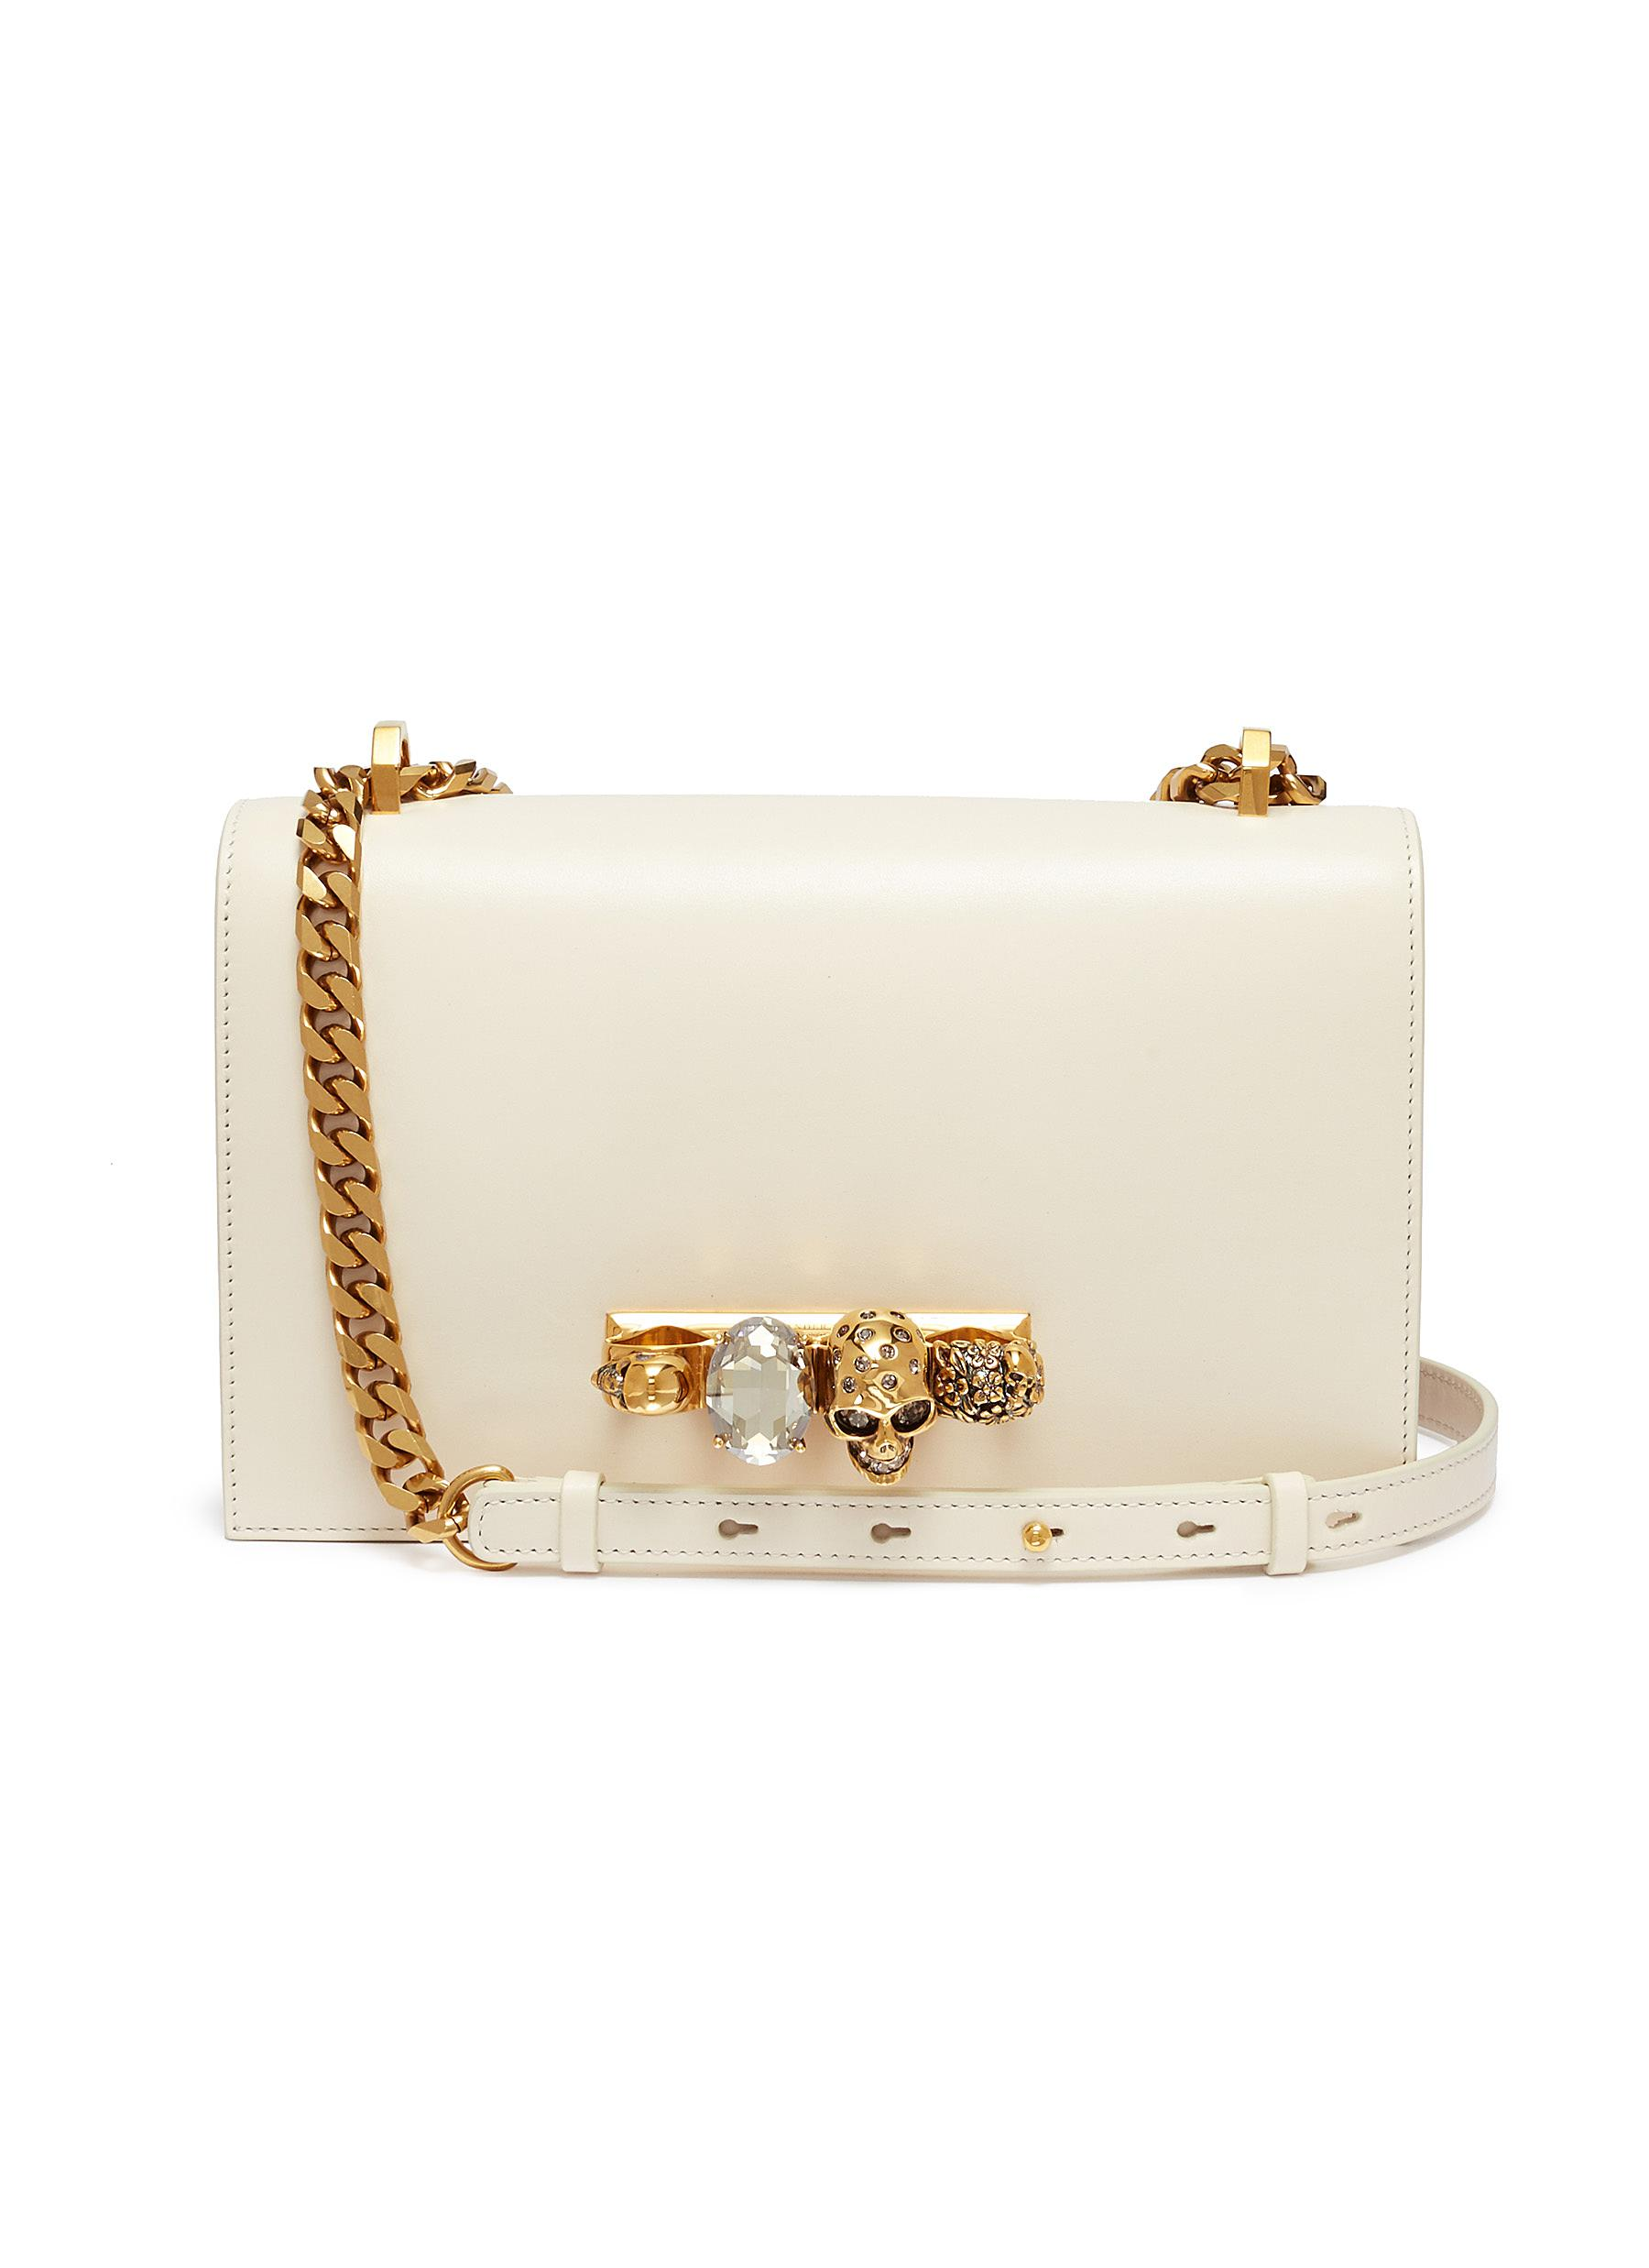 82326e72a0a1 ALEXANDER MCQUEEN | 'The Jewelled Satchel' in leather with Swarovski ...